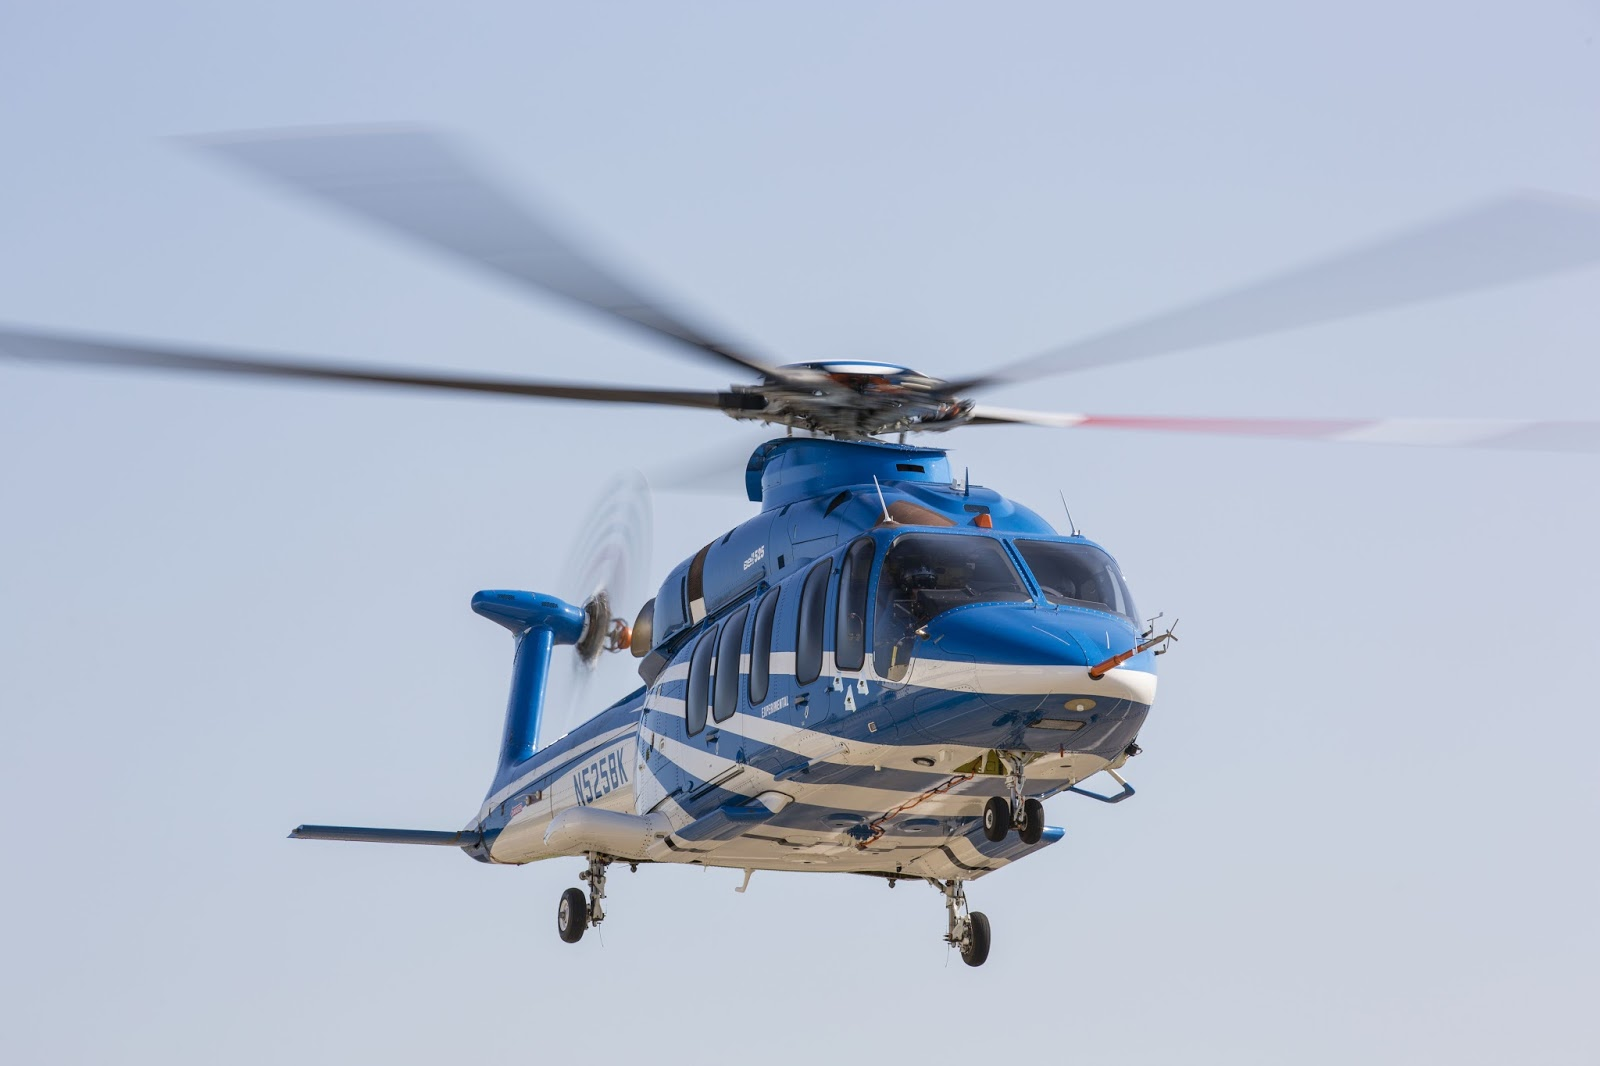 resume 92a Resume bell resume 525 flight testing after fatal crash aviation helicopter has resumed of its new relentless super medium which was suspended following fatal